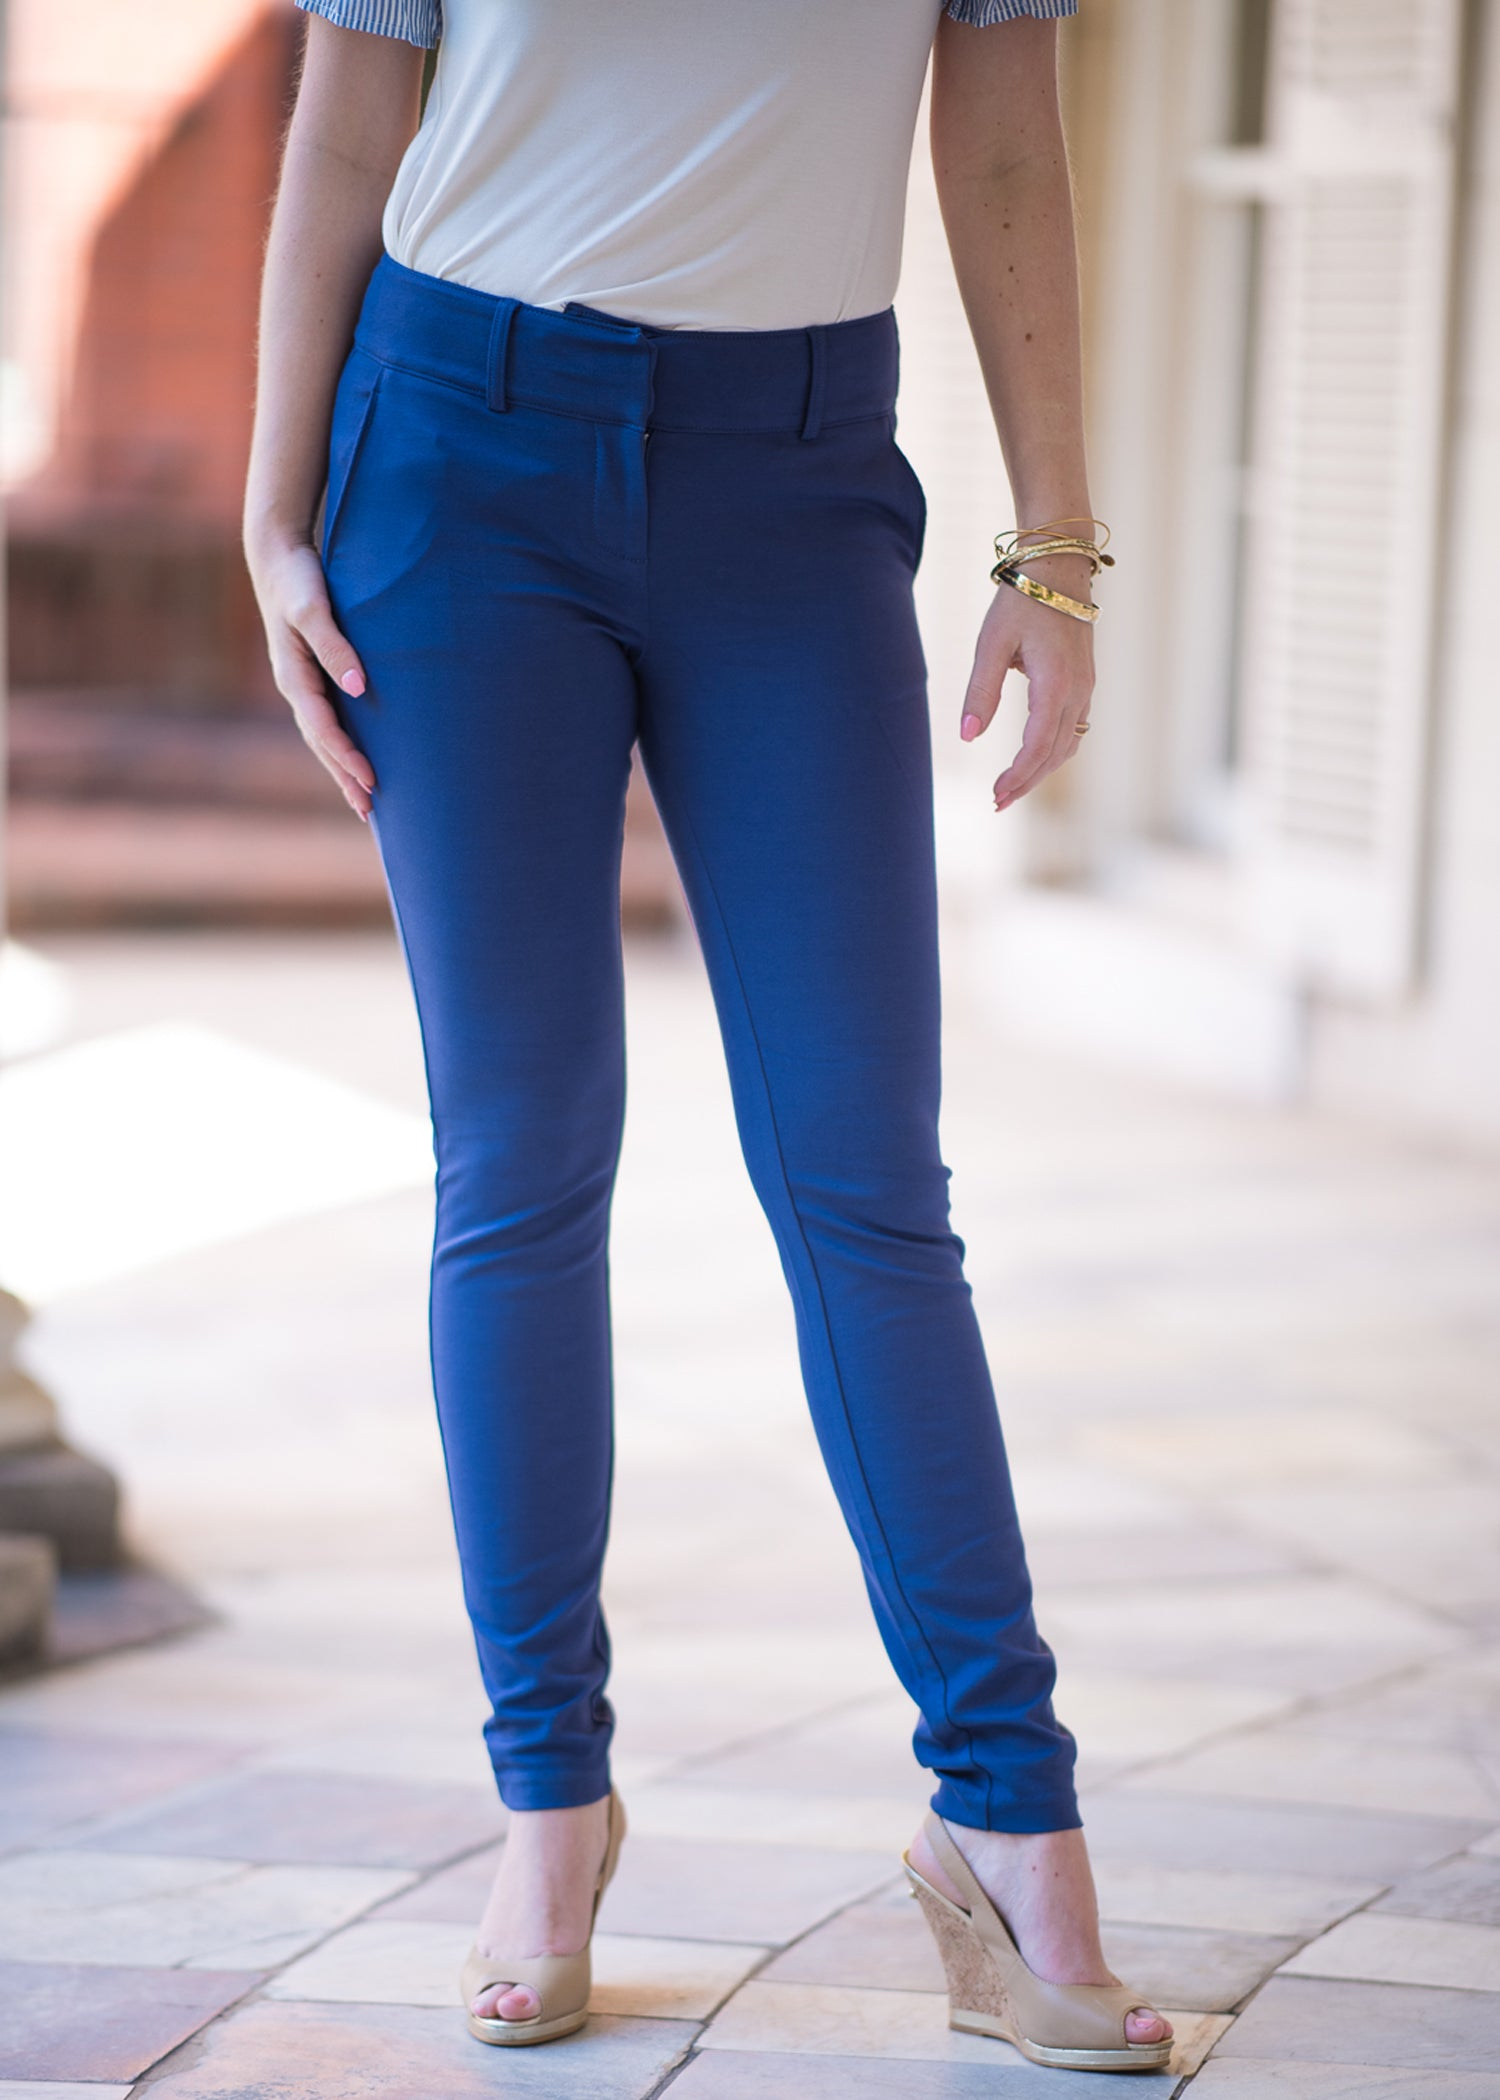 search for latest prevalent buying cheap Ankle Yoga-Like Work Pants – Trunk Up Boutique